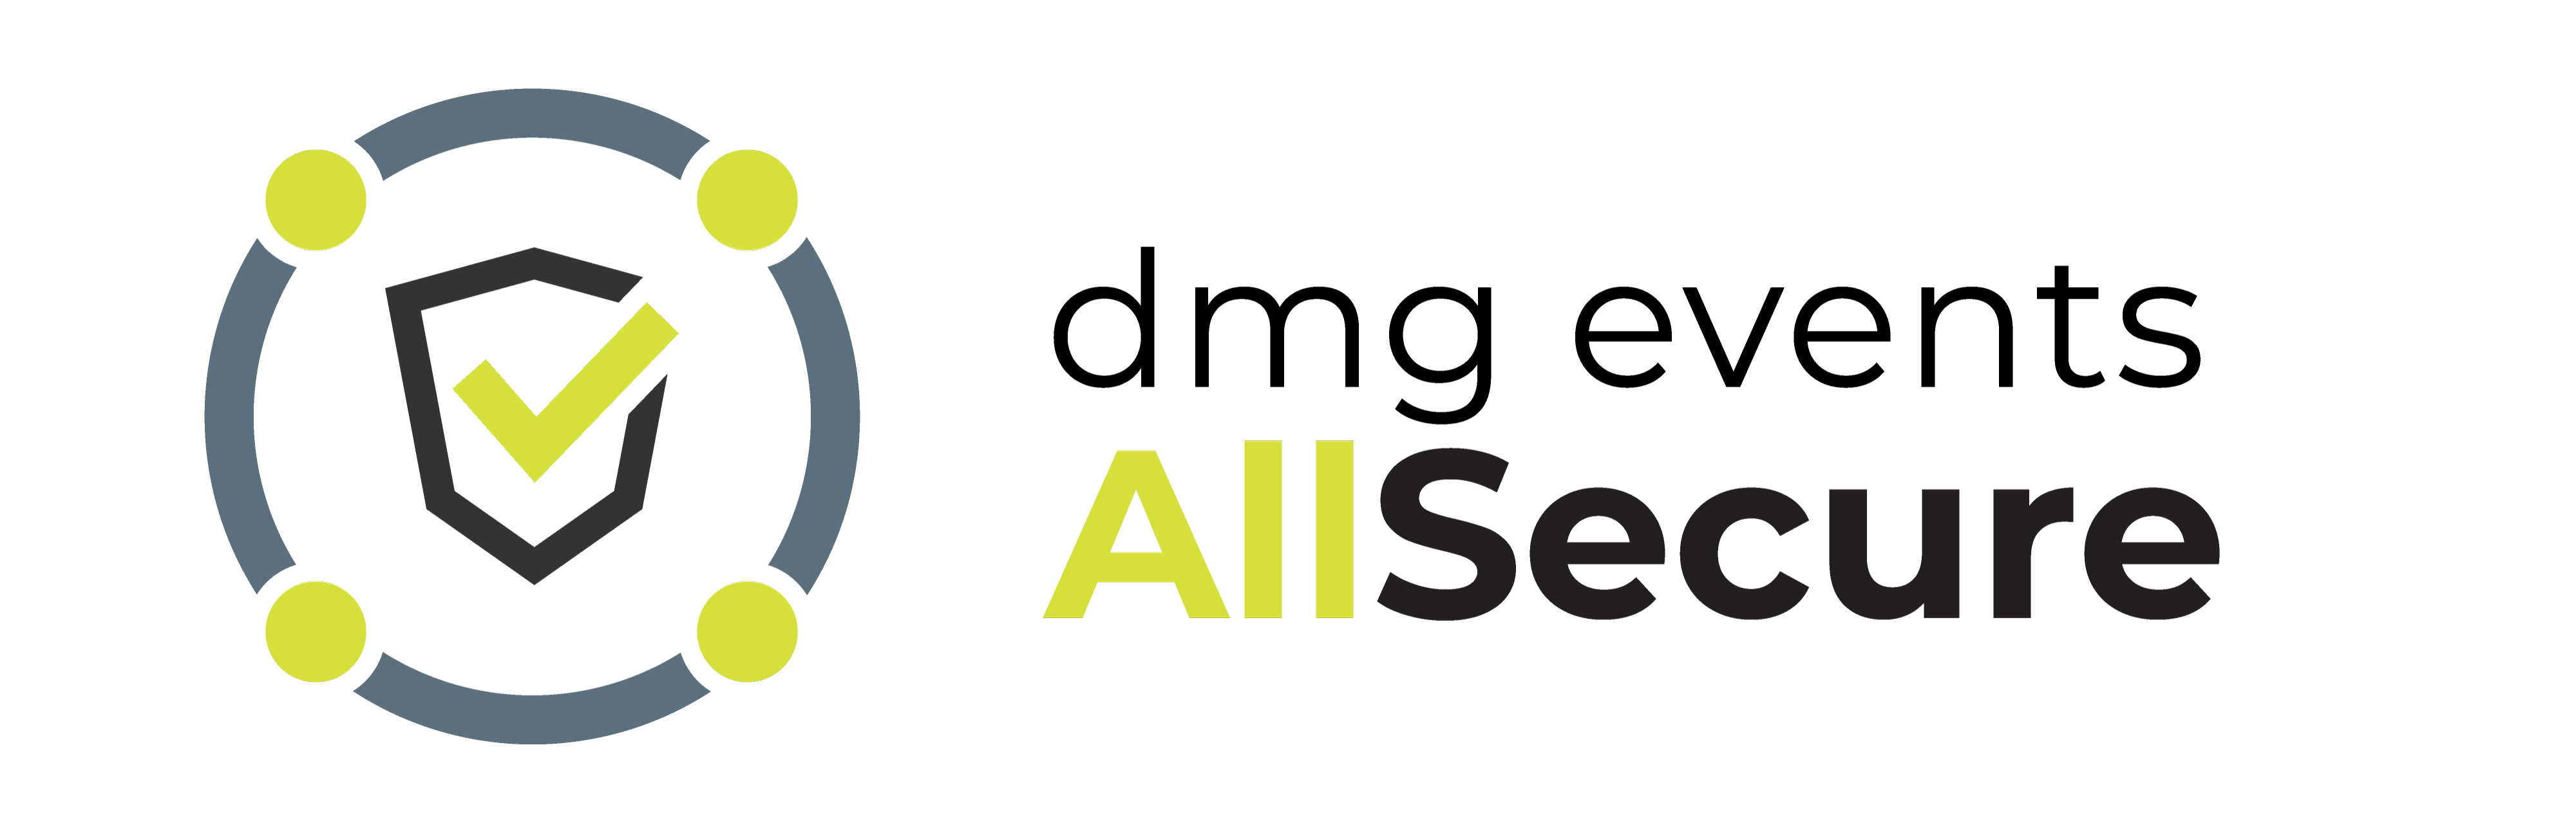 dmg-allsecure-logo-coloured